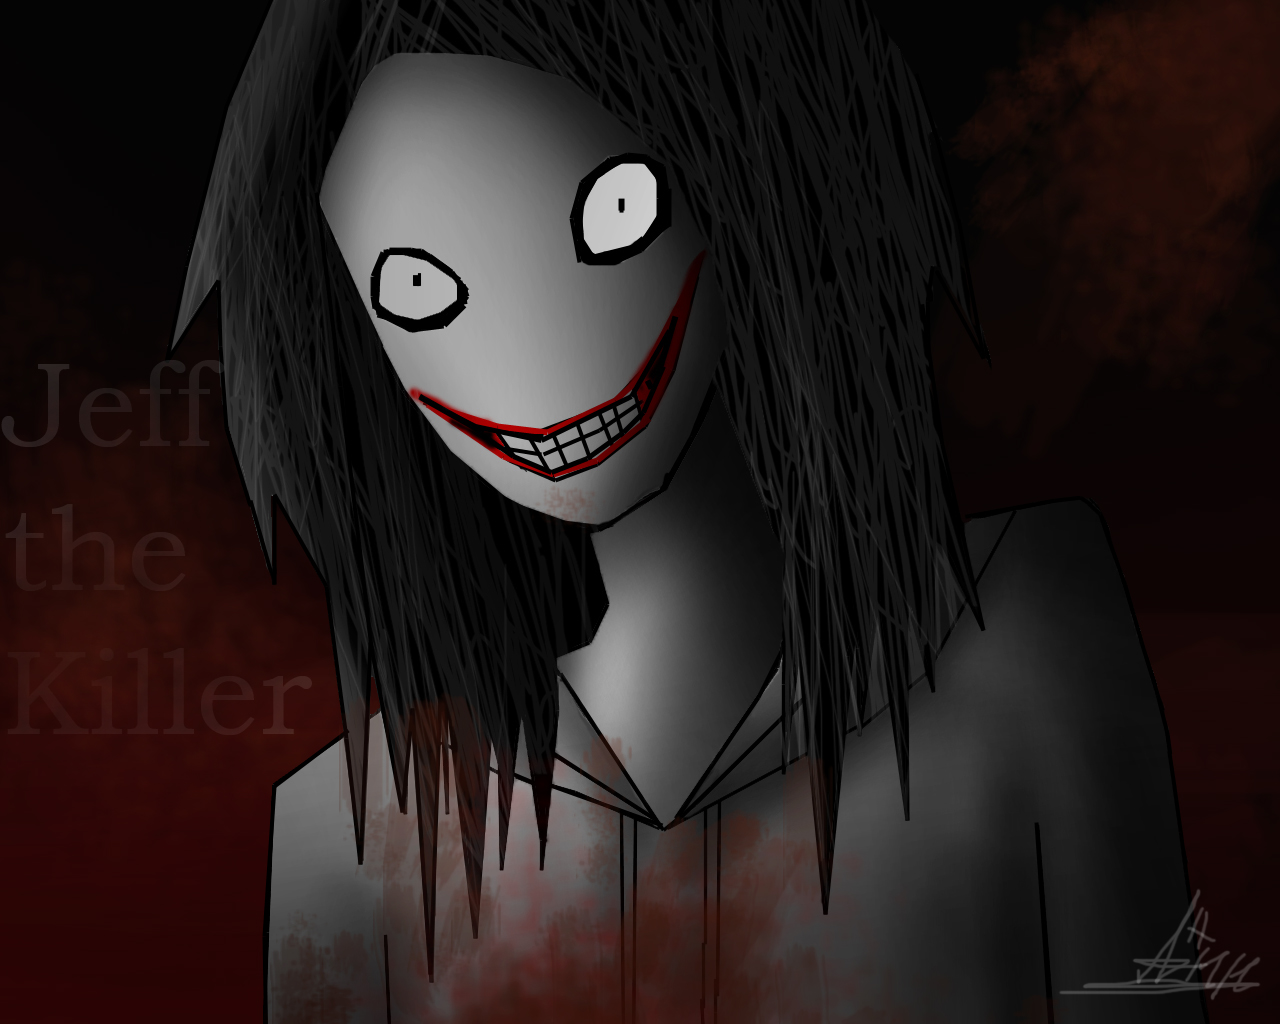 Jeff the Killer by NiGHTSgirl666